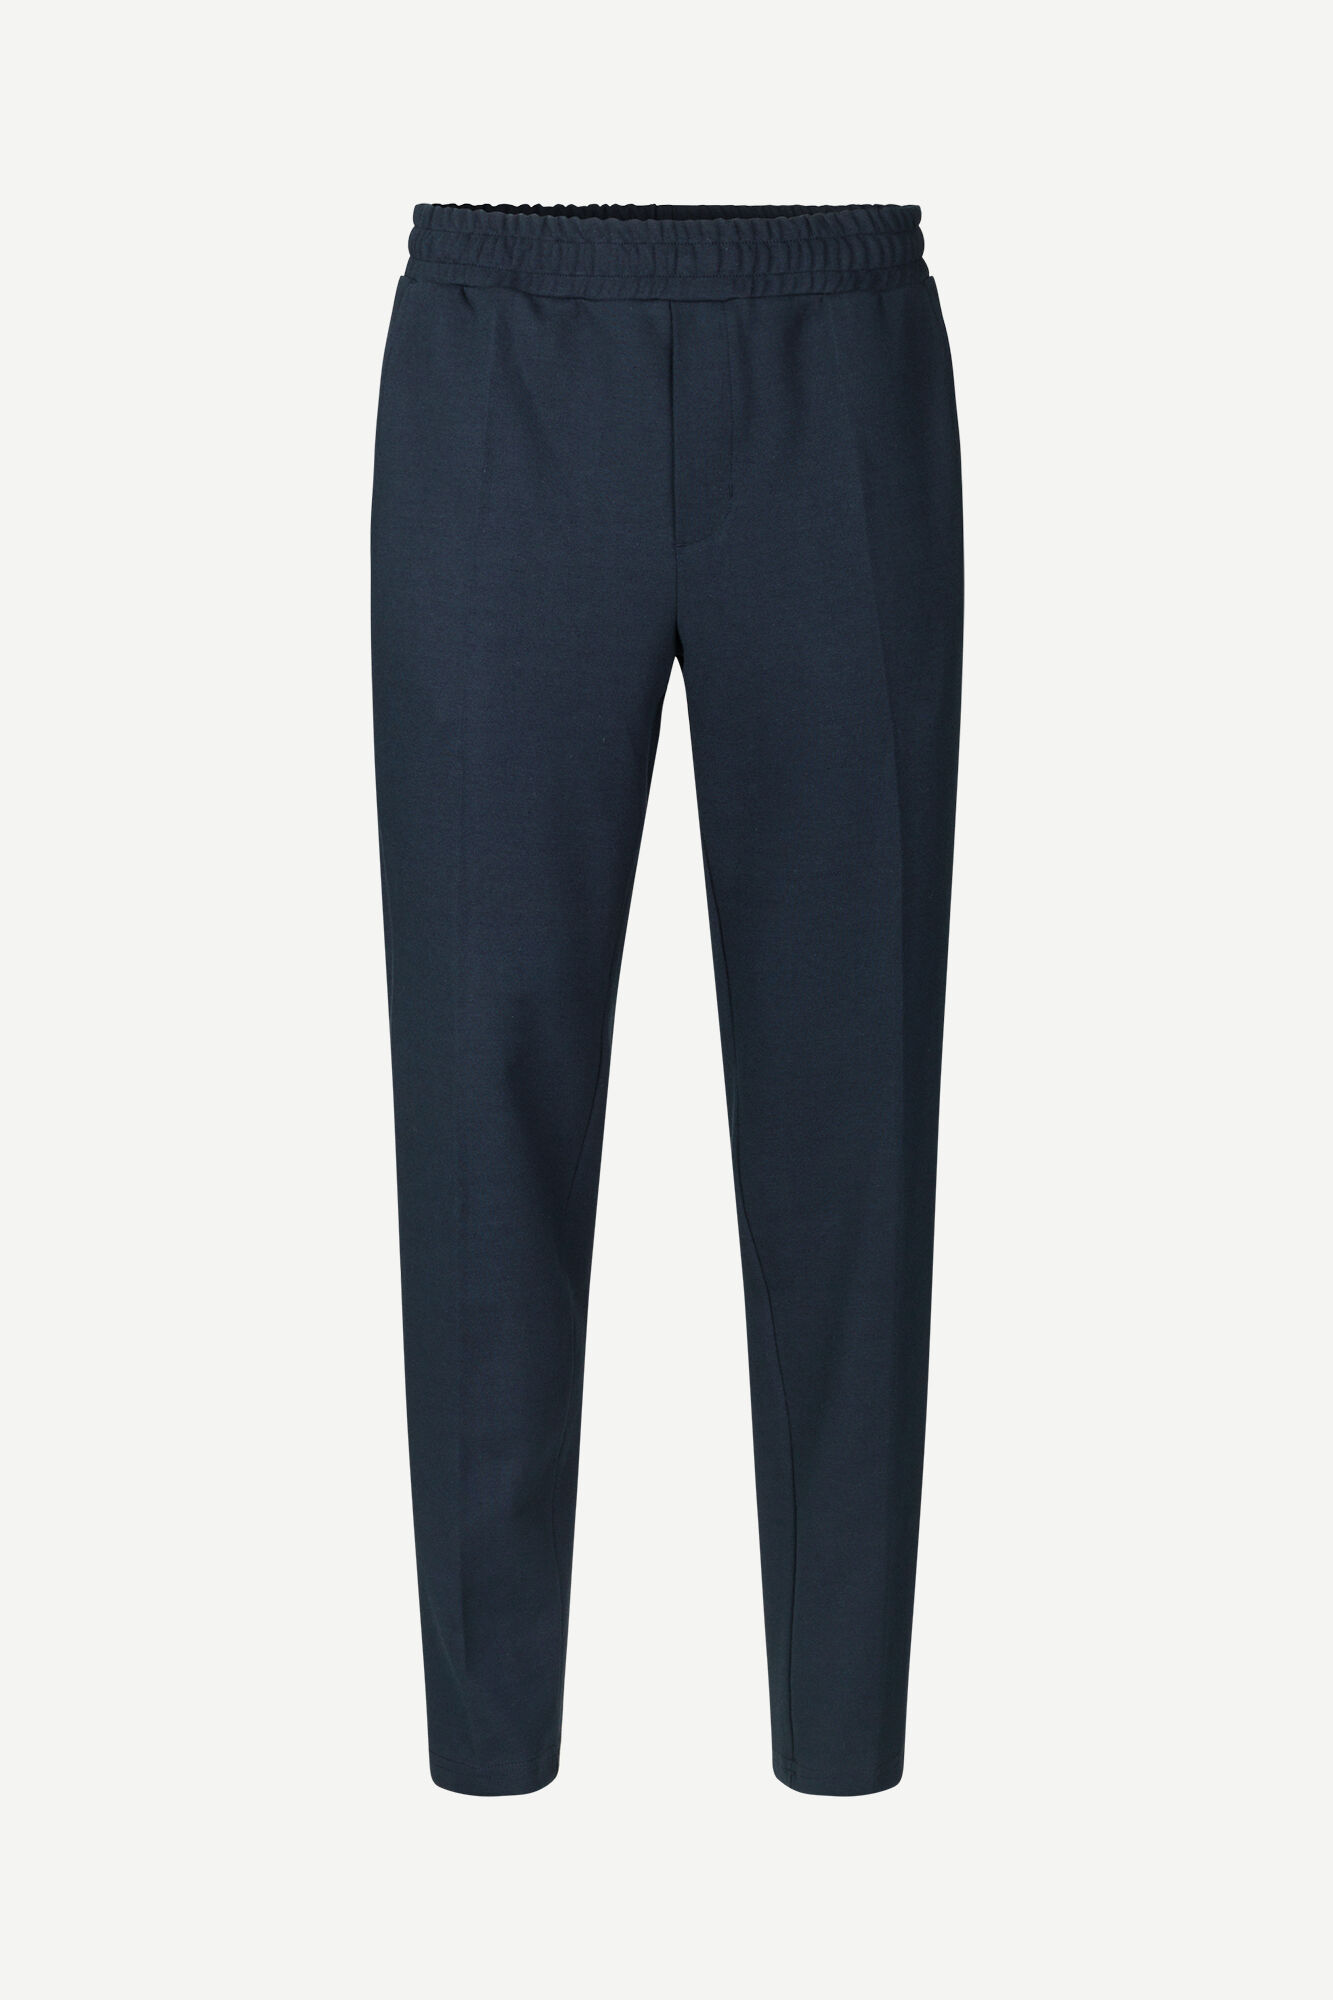 Joma trousers 11591